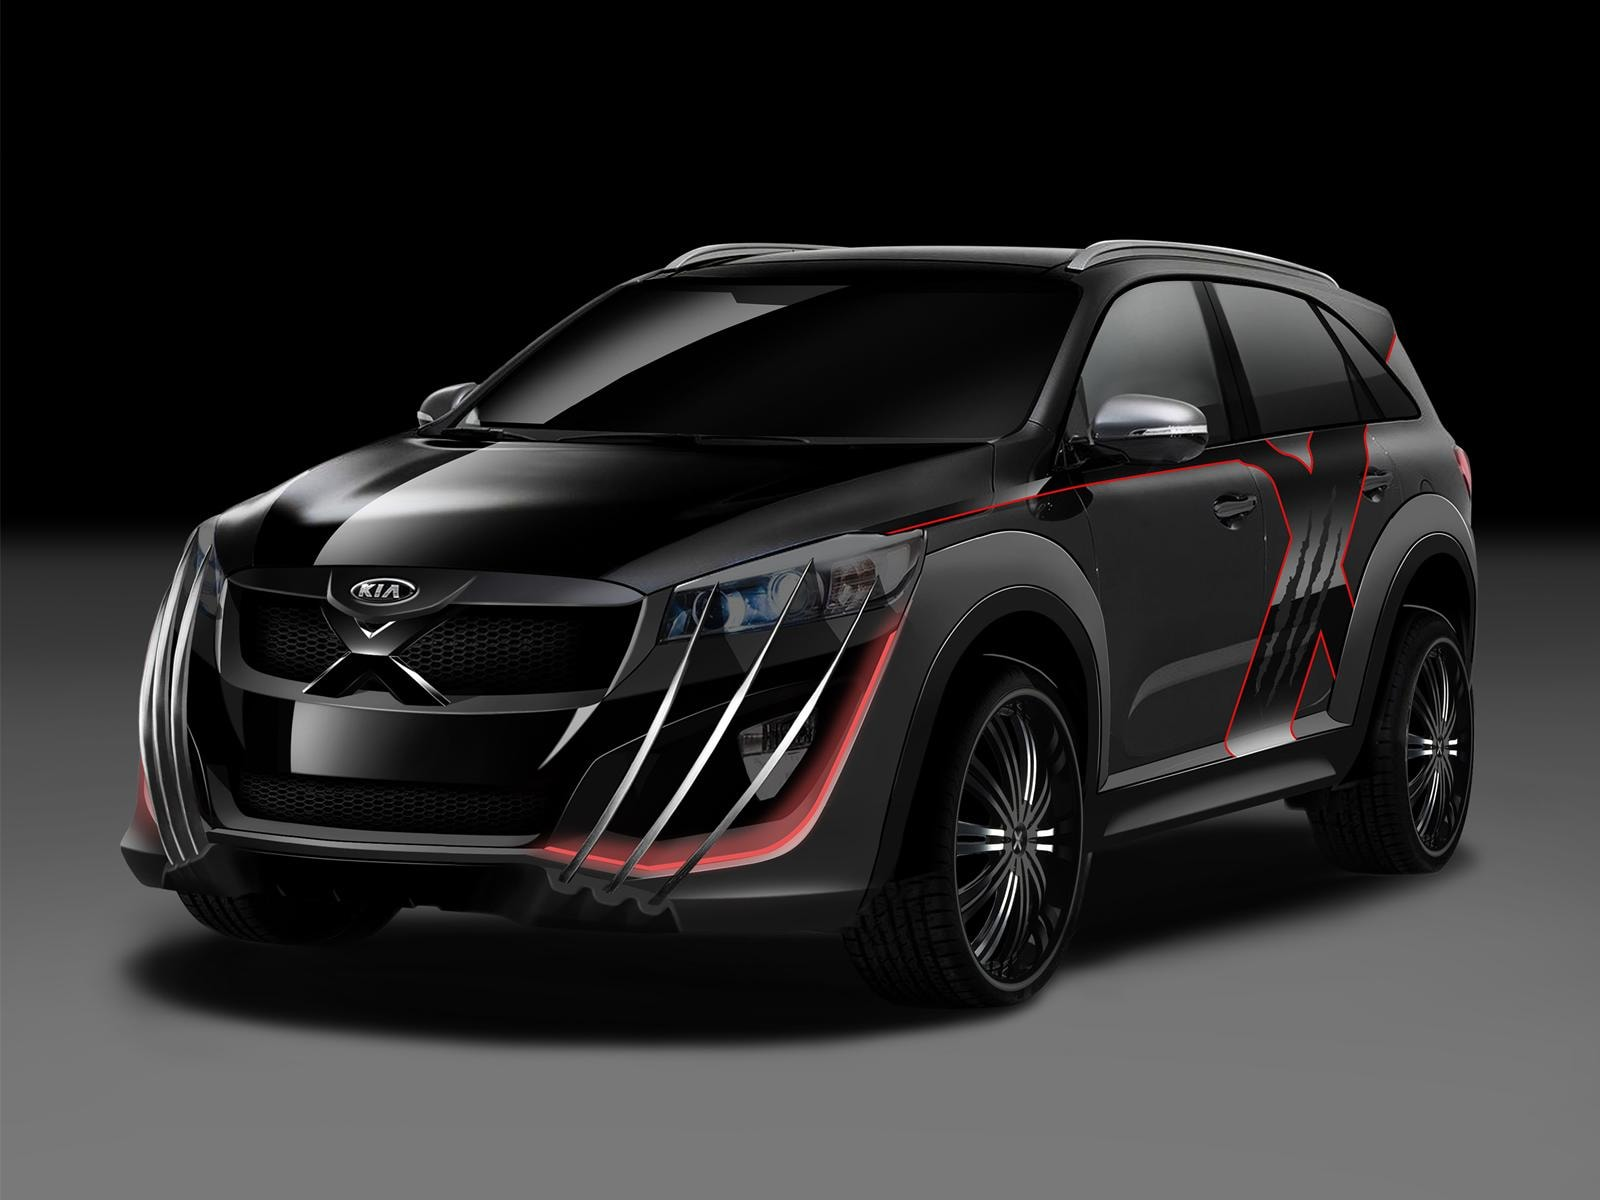 wolverines-kia-sorento-is-an-x-men-promo-vehicle-photo-gallery-89169_1